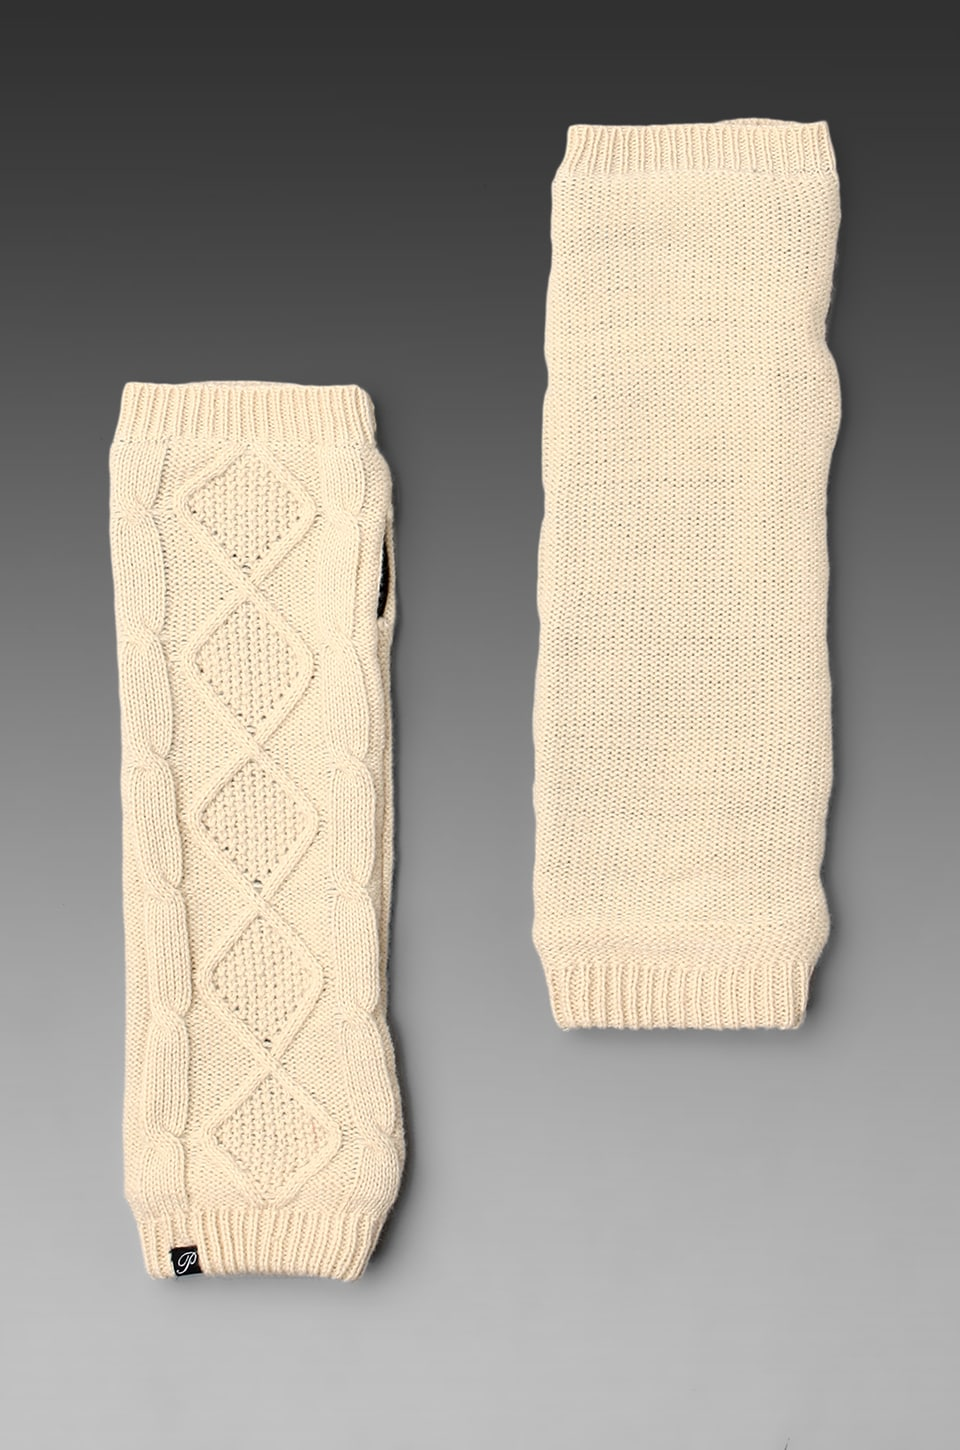 Plush Cable Knit Fleece Lined Armwarmer in Creme